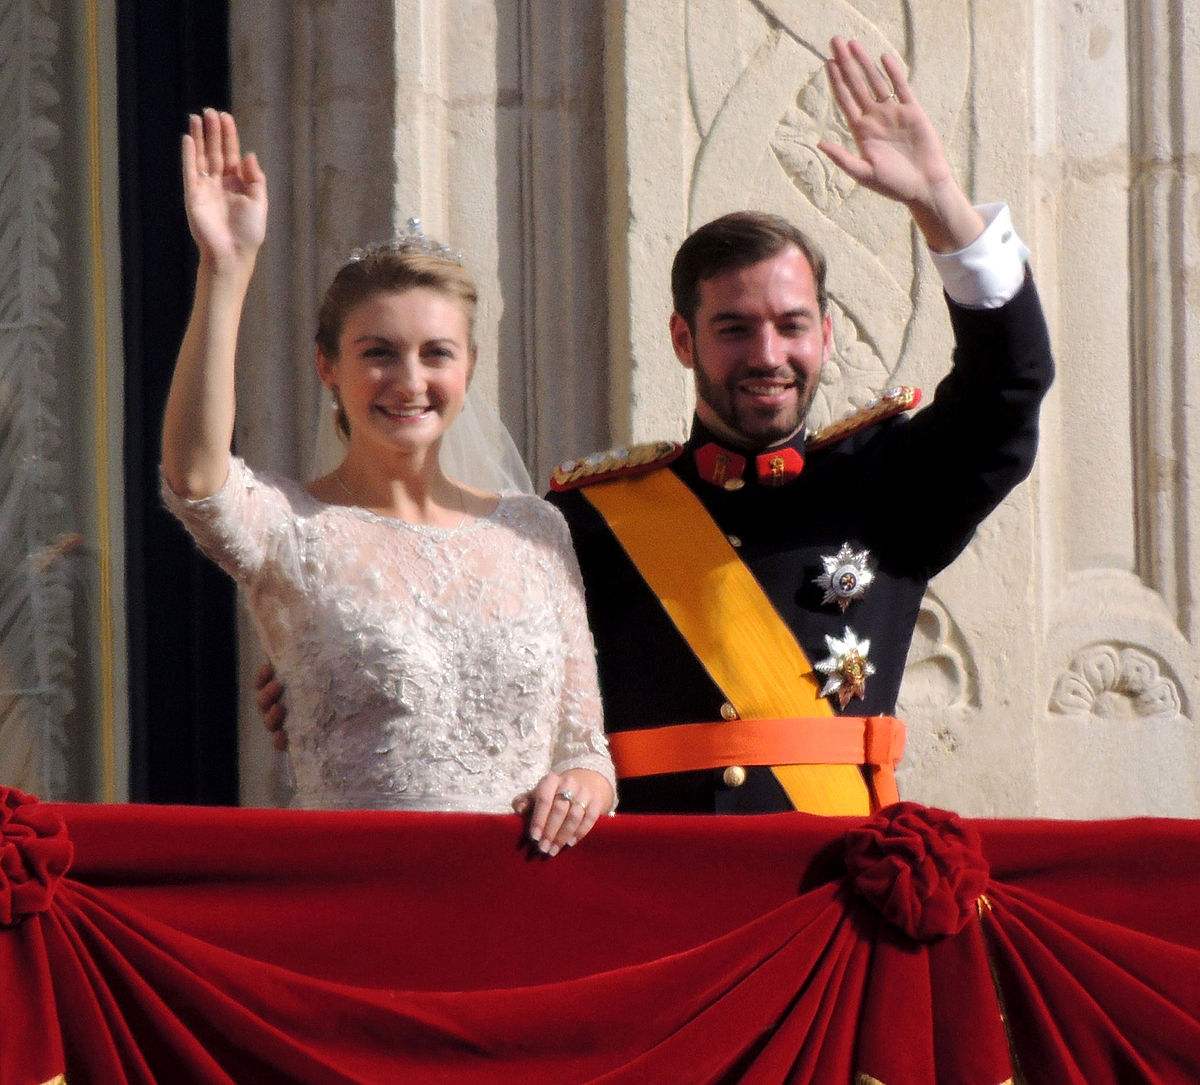 Wedding Of Guillaume Hereditary Grand Duke Luxembourg And Countess Stephanie De Lannoy